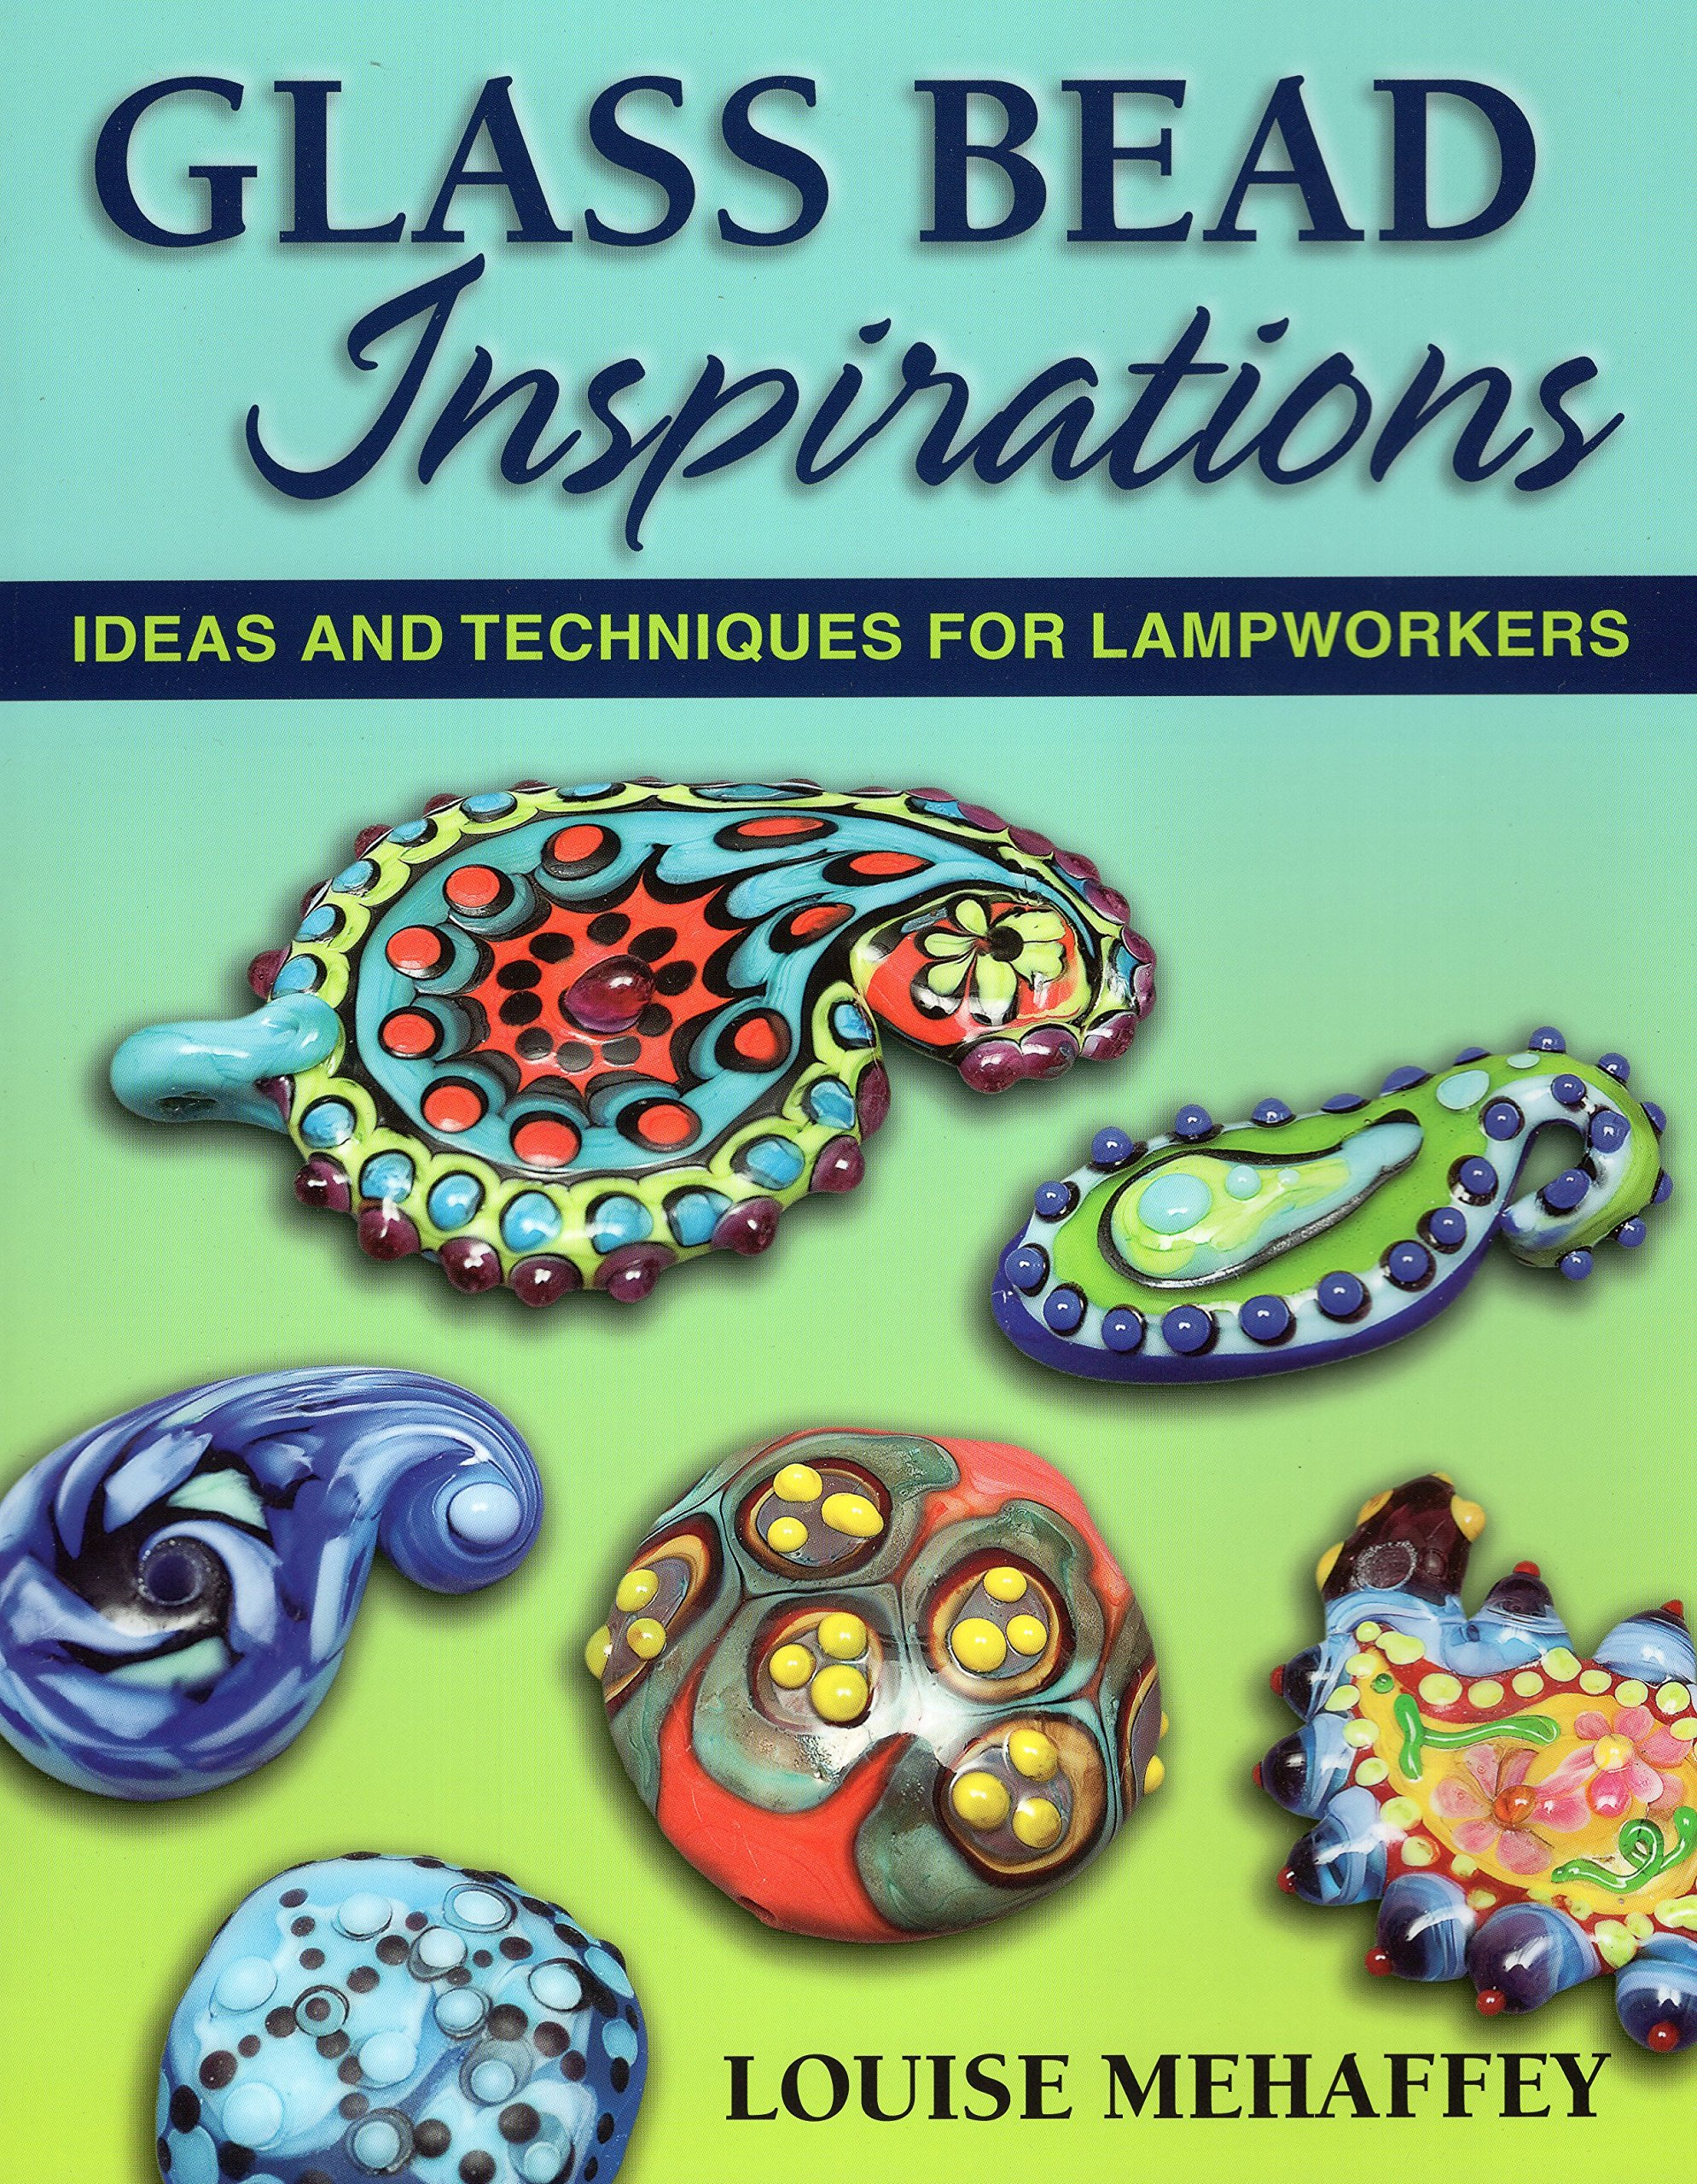 glass-bead-inspirations-ideas-and-techniques-for-lampworkers